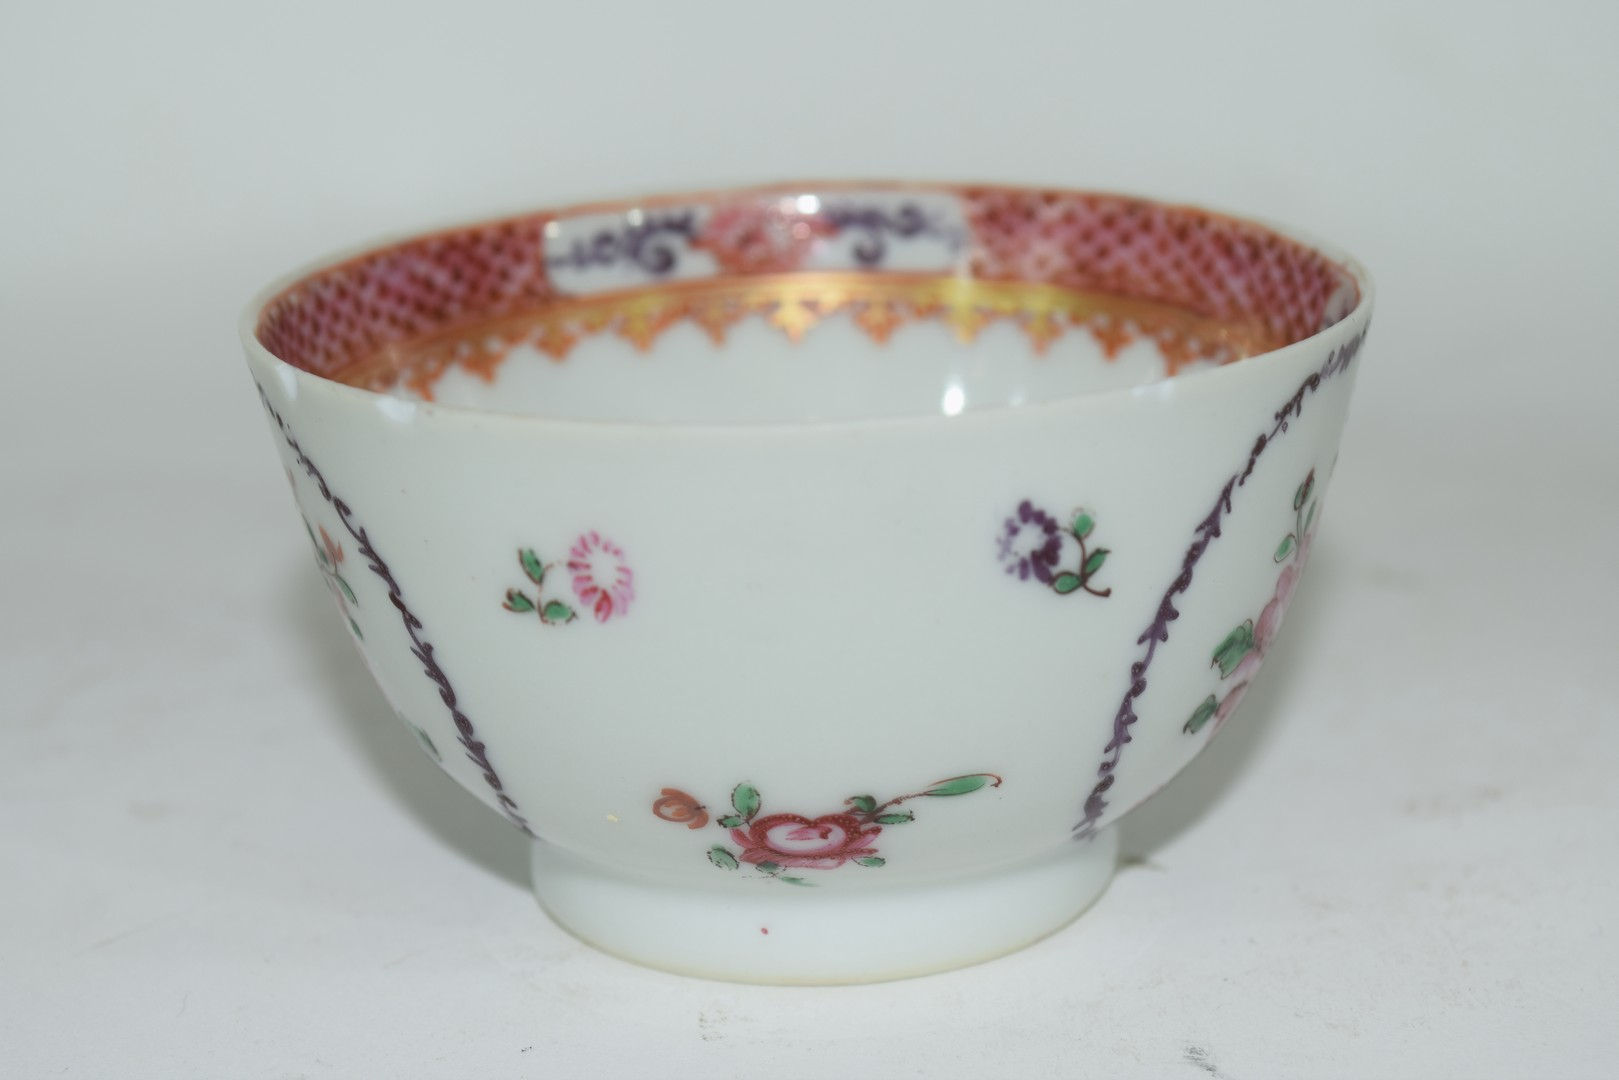 Continental porcelain cup and saucer decorated in Meissen style - Image 2 of 6